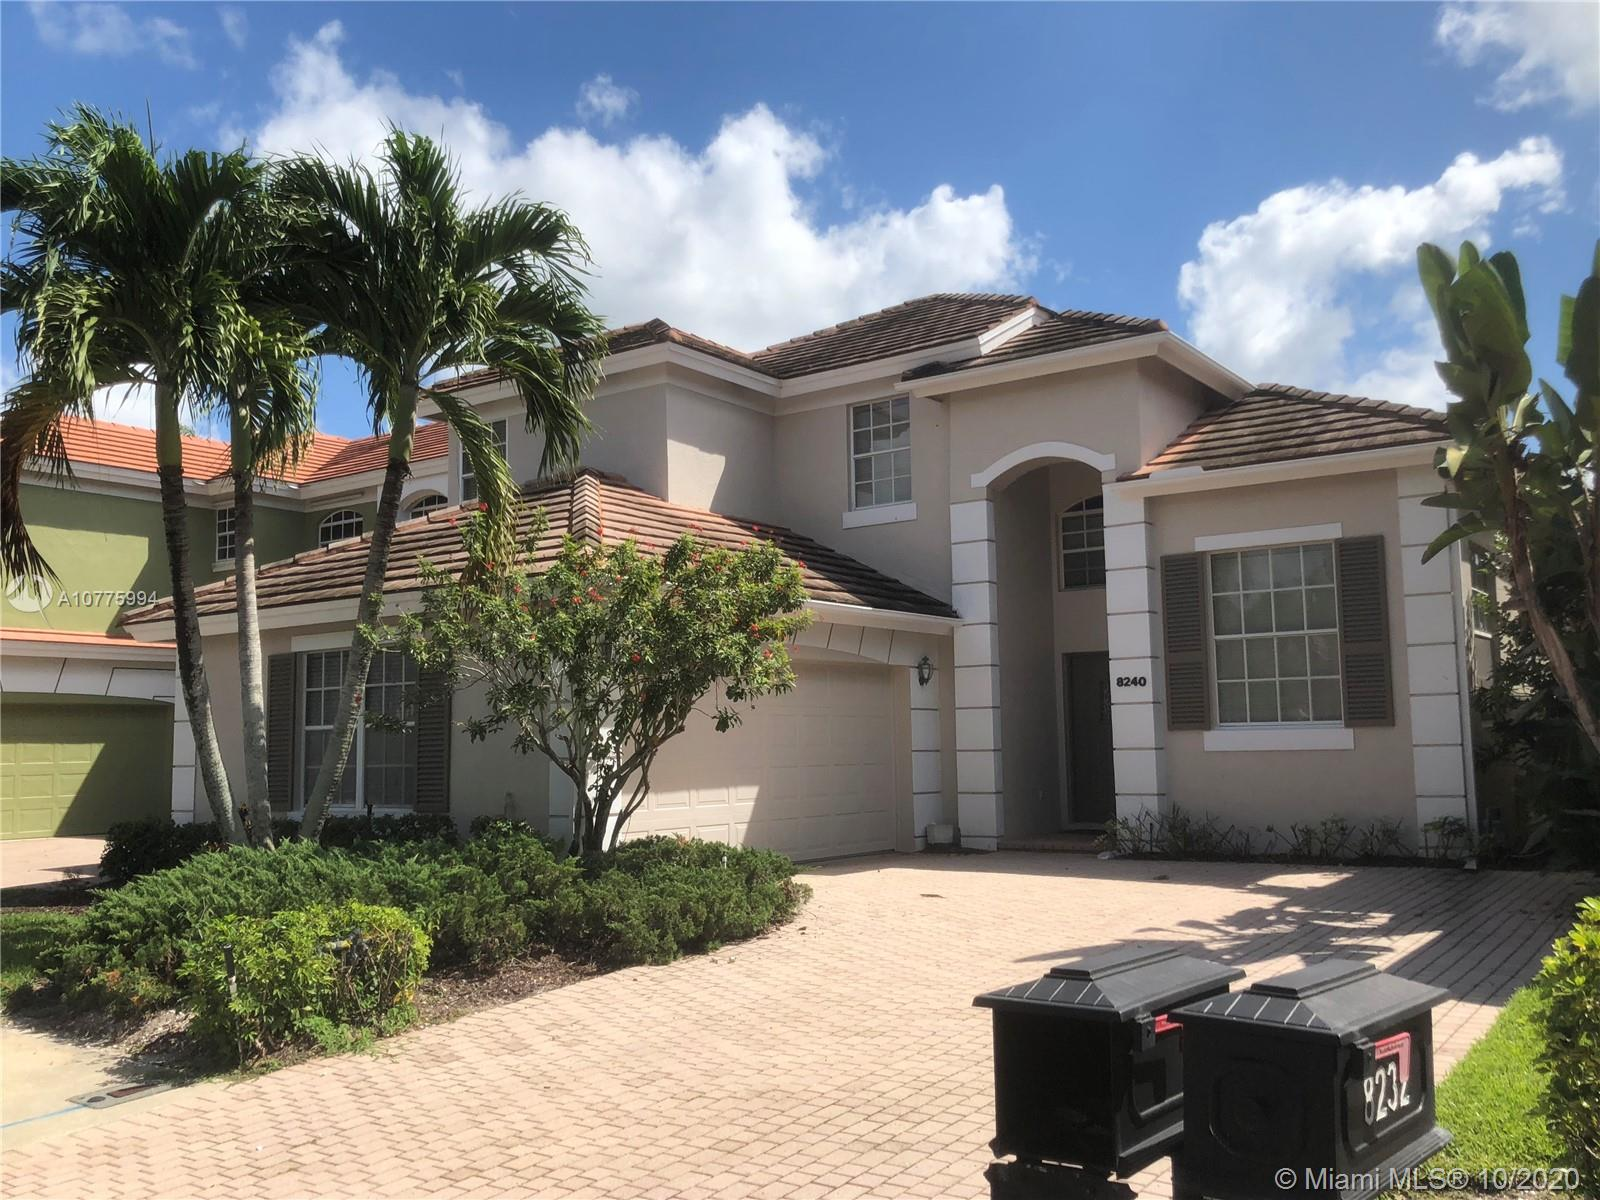 8240 Heritage Club Dr, West Palm Beach, FL 33412